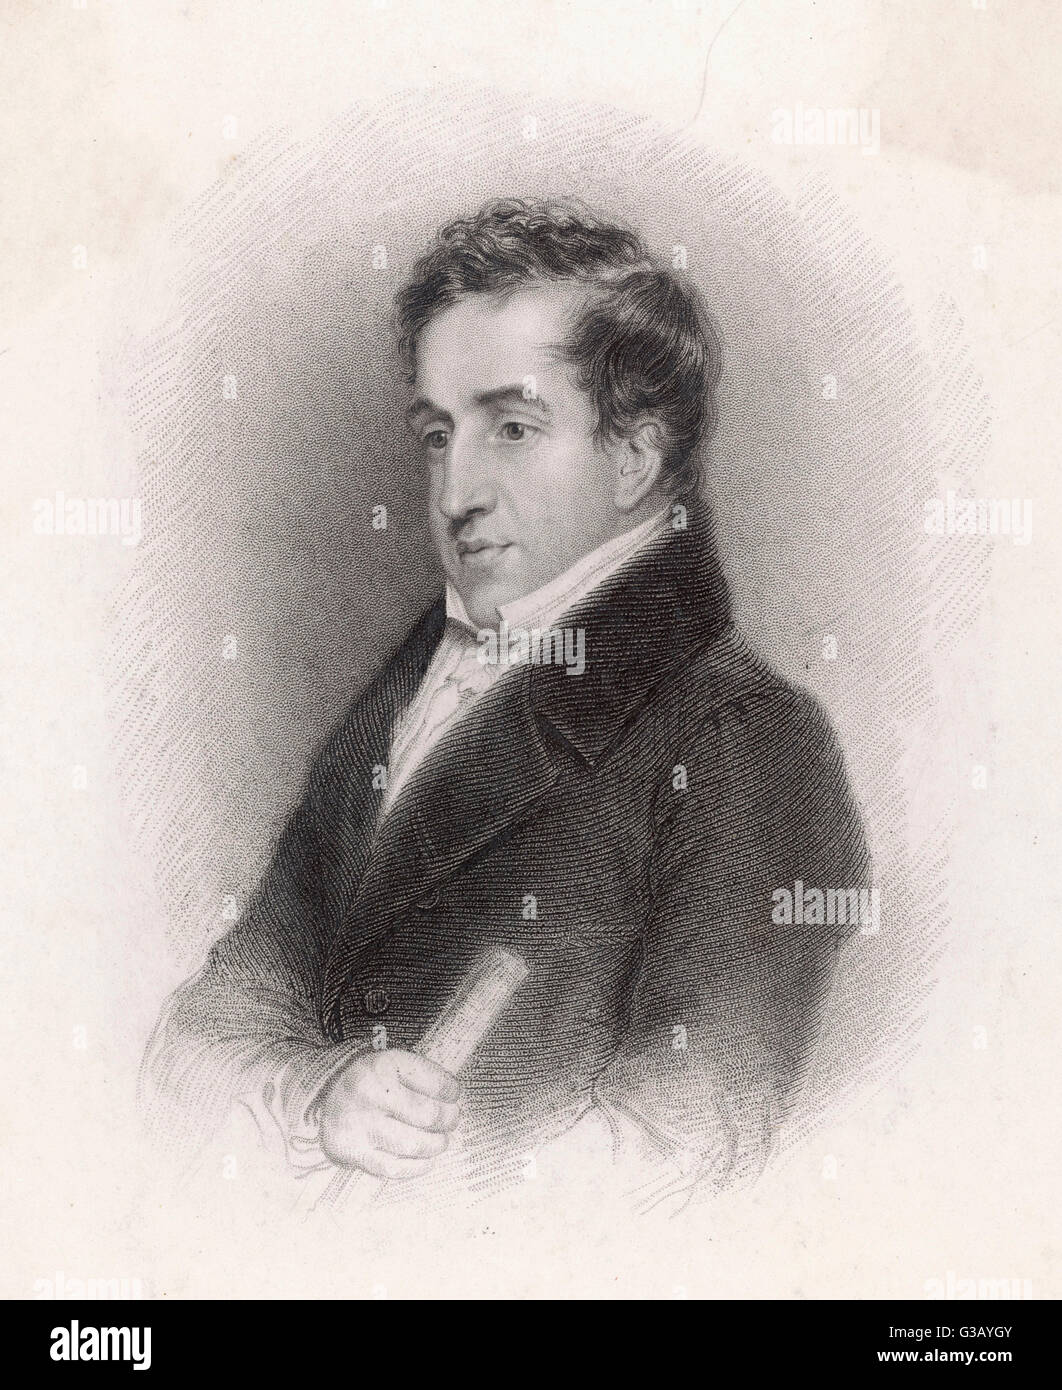 JOHN CAM HOBHOUSE Lord Broughton  statesman and author       Date: 1786 - 1869 - Stock Image